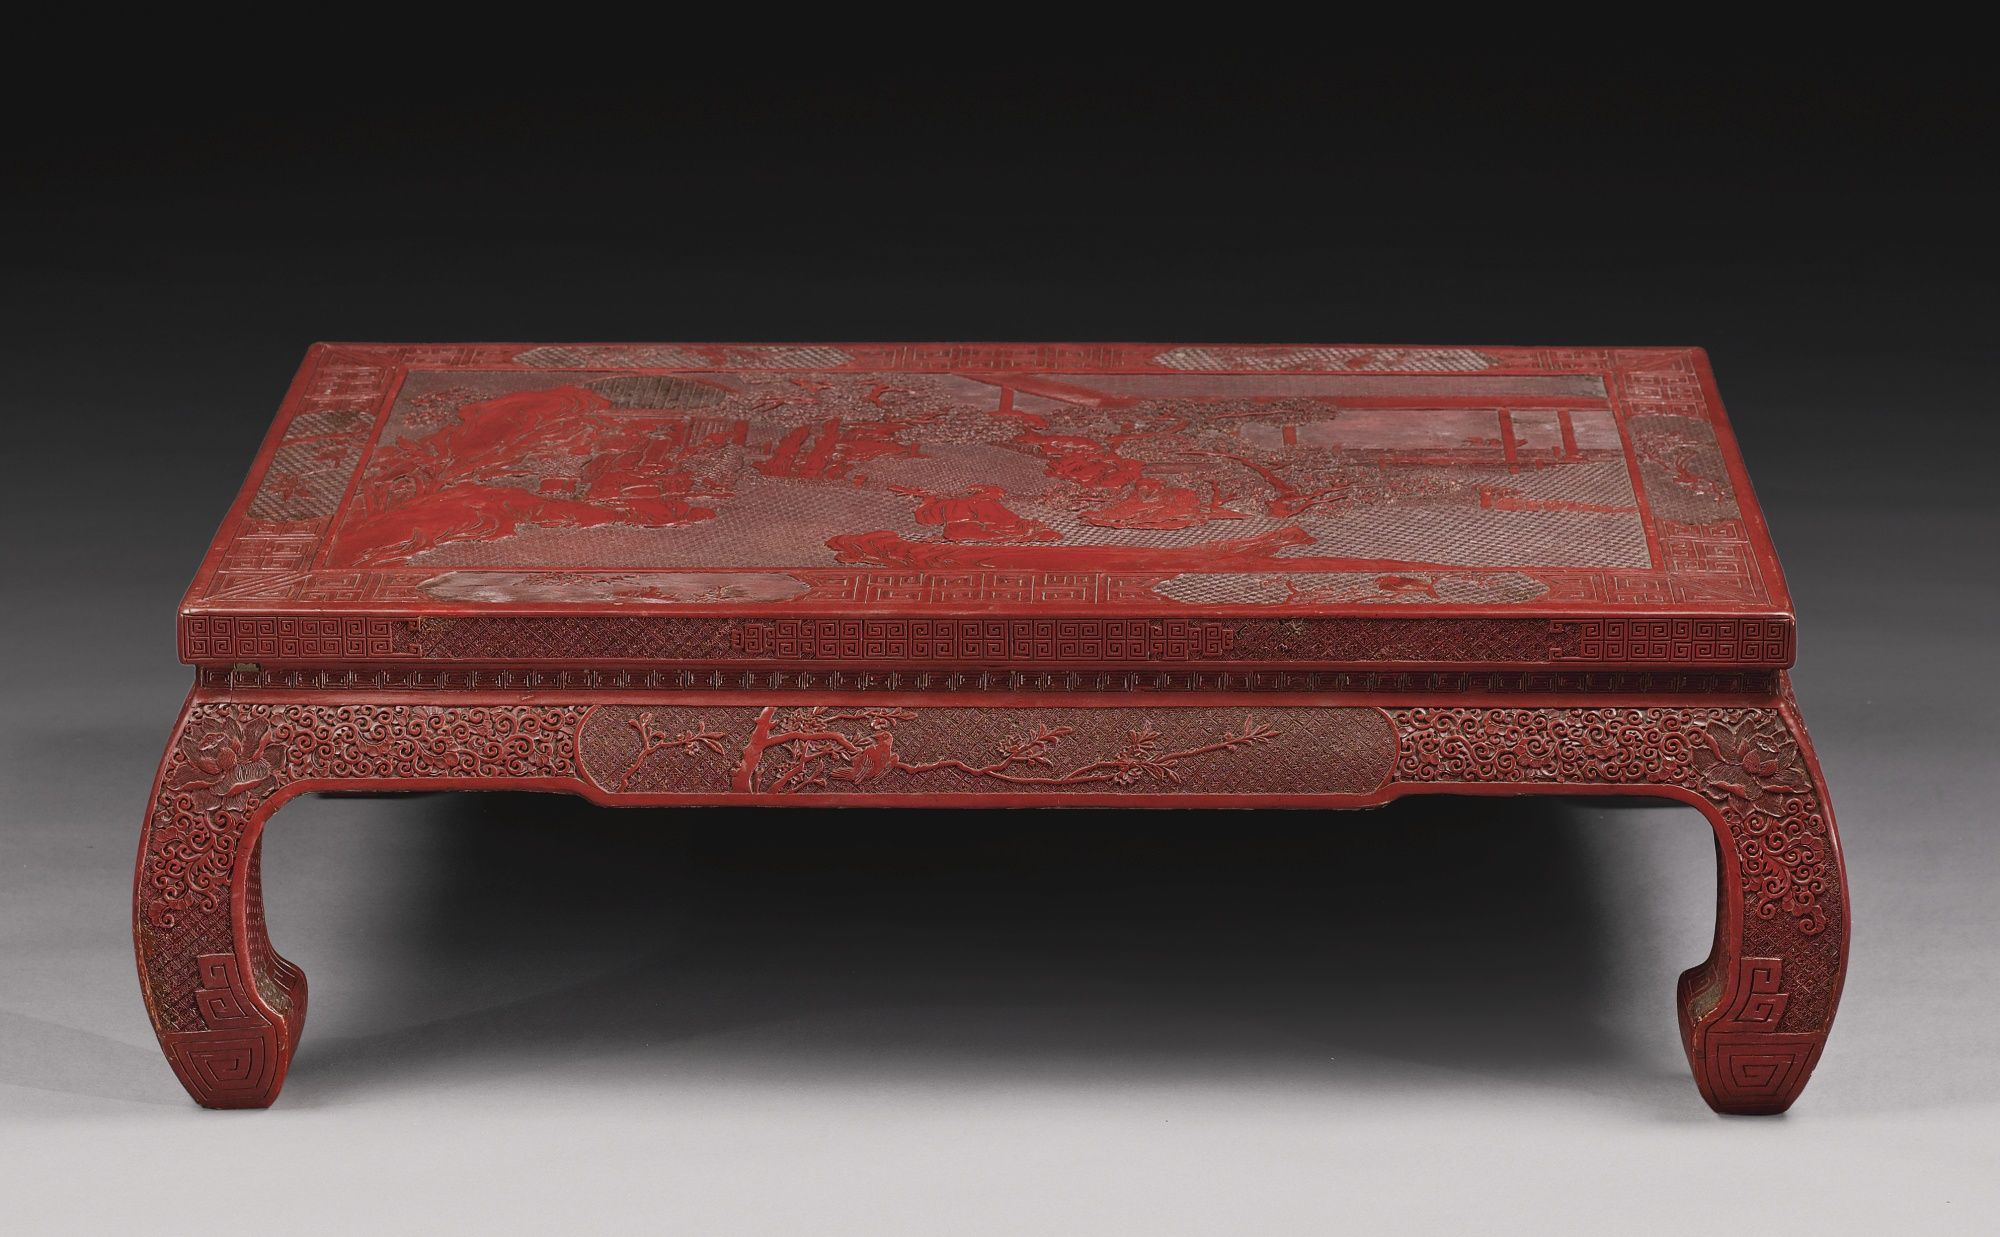 A Carved Cinnabar Lacquer Low Table Kangzhuo Br Qing Dynasty 19th Century Lot Ancient China Colorful Furniture Furniture [ 1237 x 2000 Pixel ]